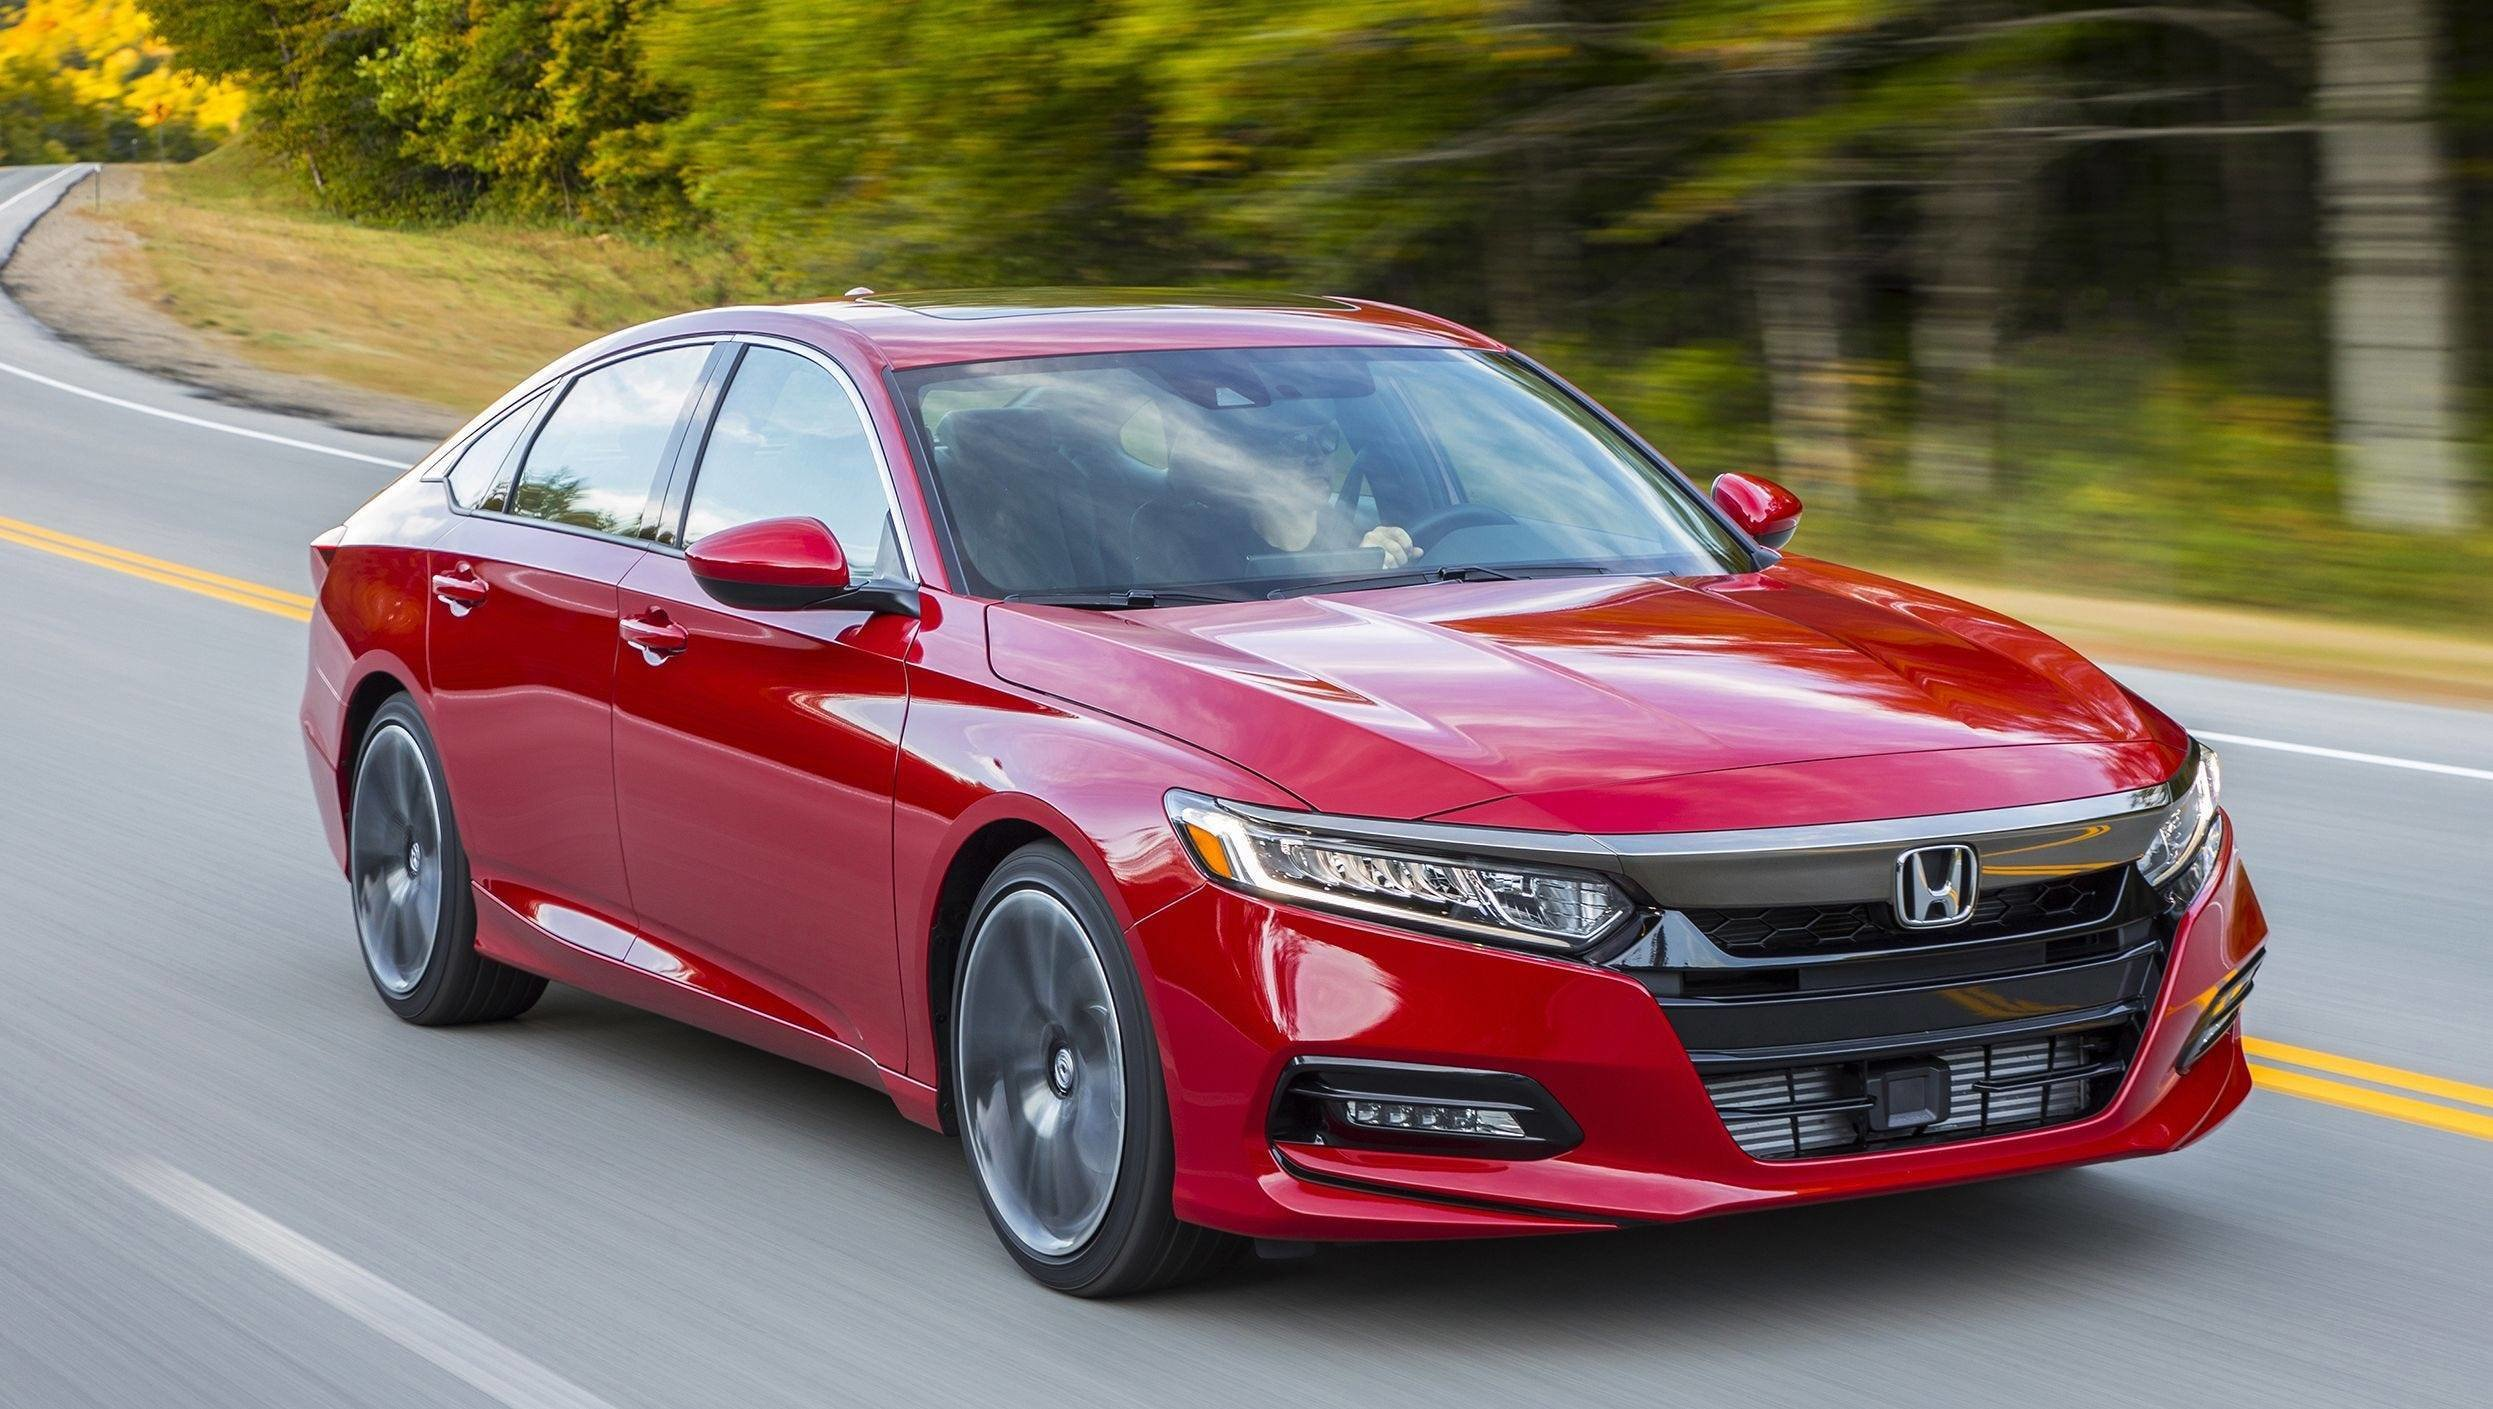 Latest Chevrolet Honda Dominate List Of Top Family Cars Free Download